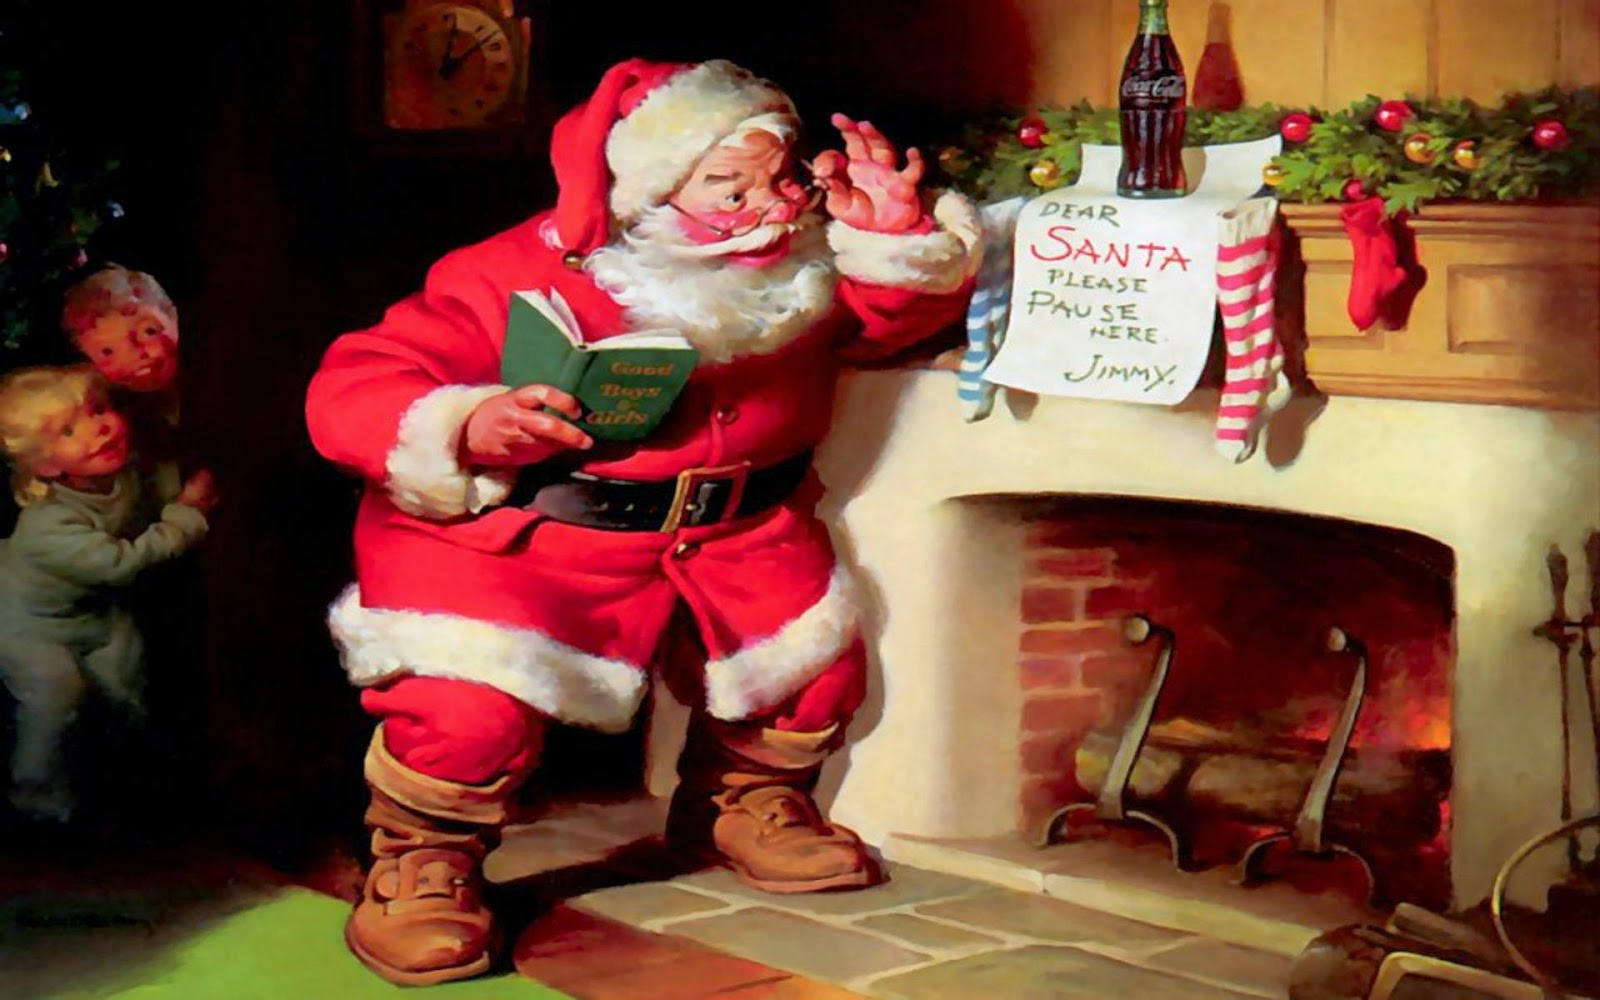 kids-hiding-behind-wall-and-watching-santa's-entry-image-picture.jpg